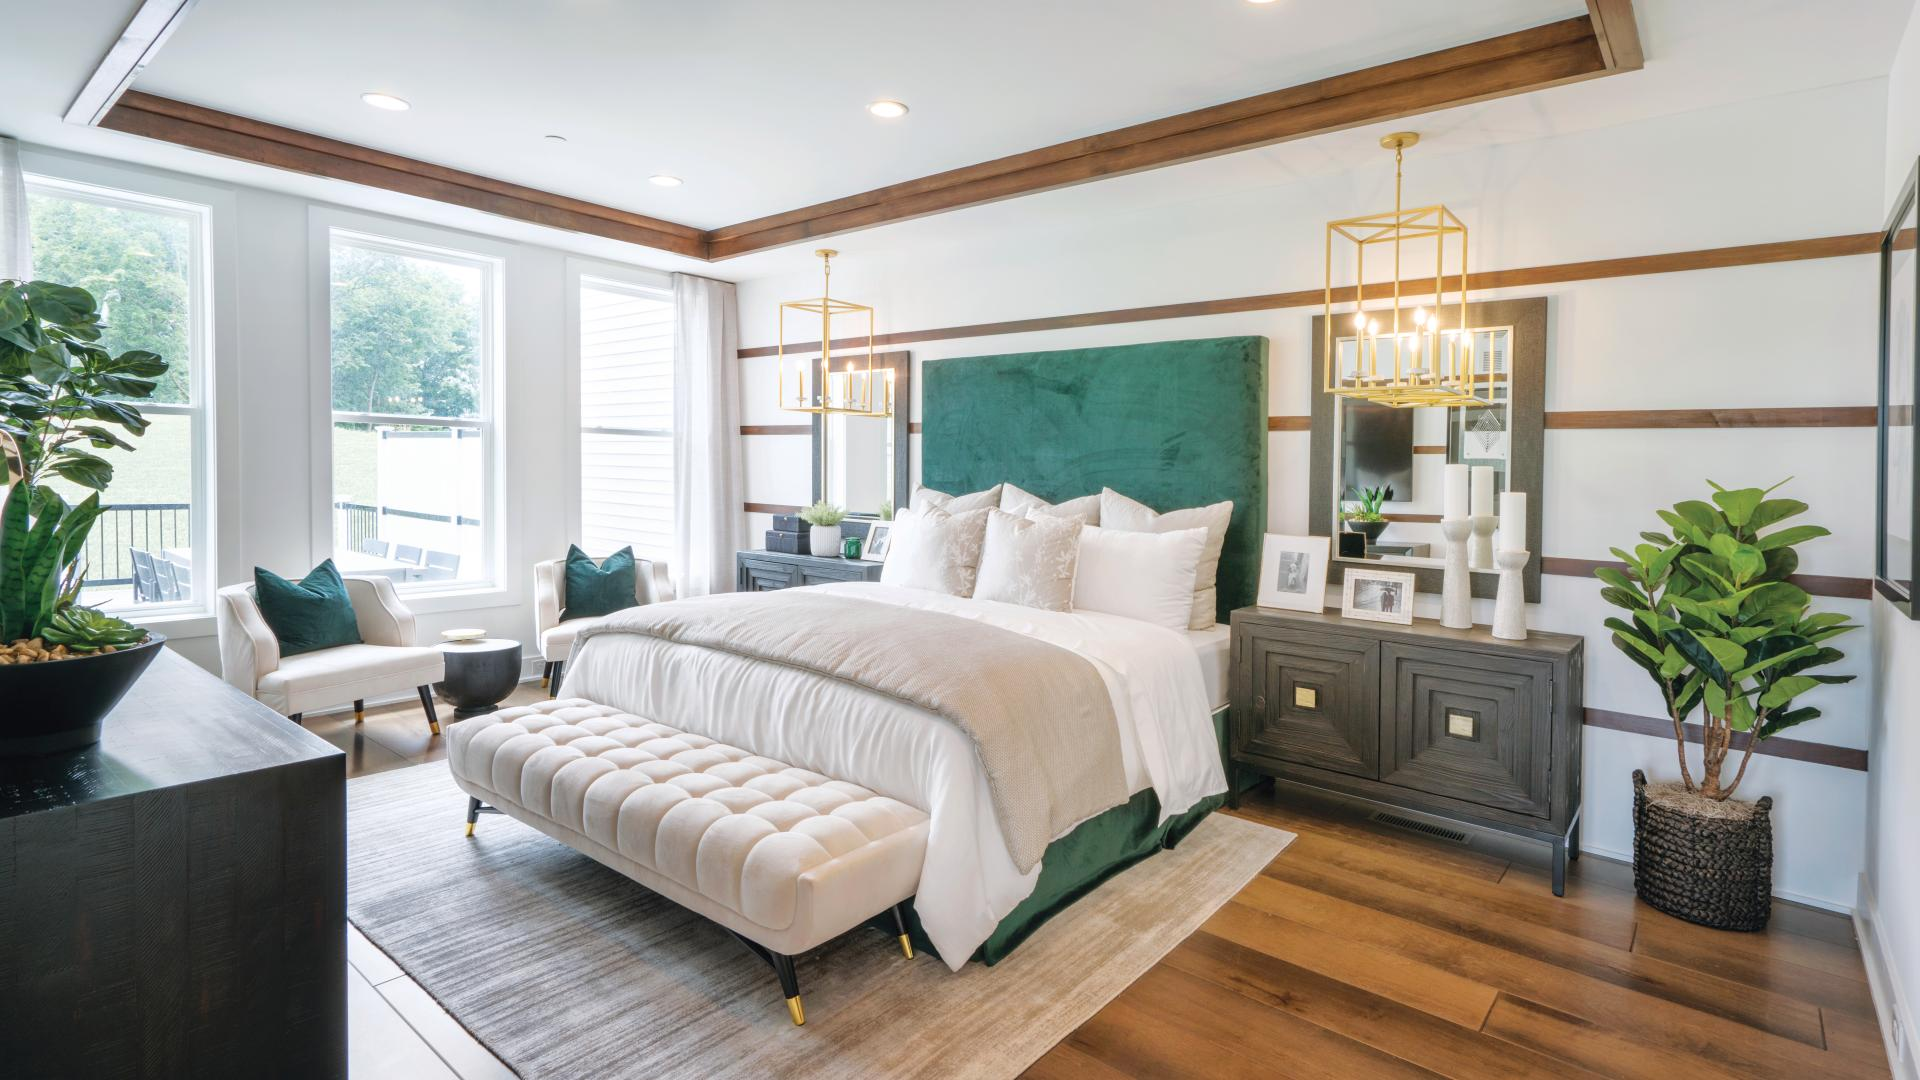 Photos are images only and should not be relied upon to confirm applicable features - Primary bedroom suite with stunning light fixtures